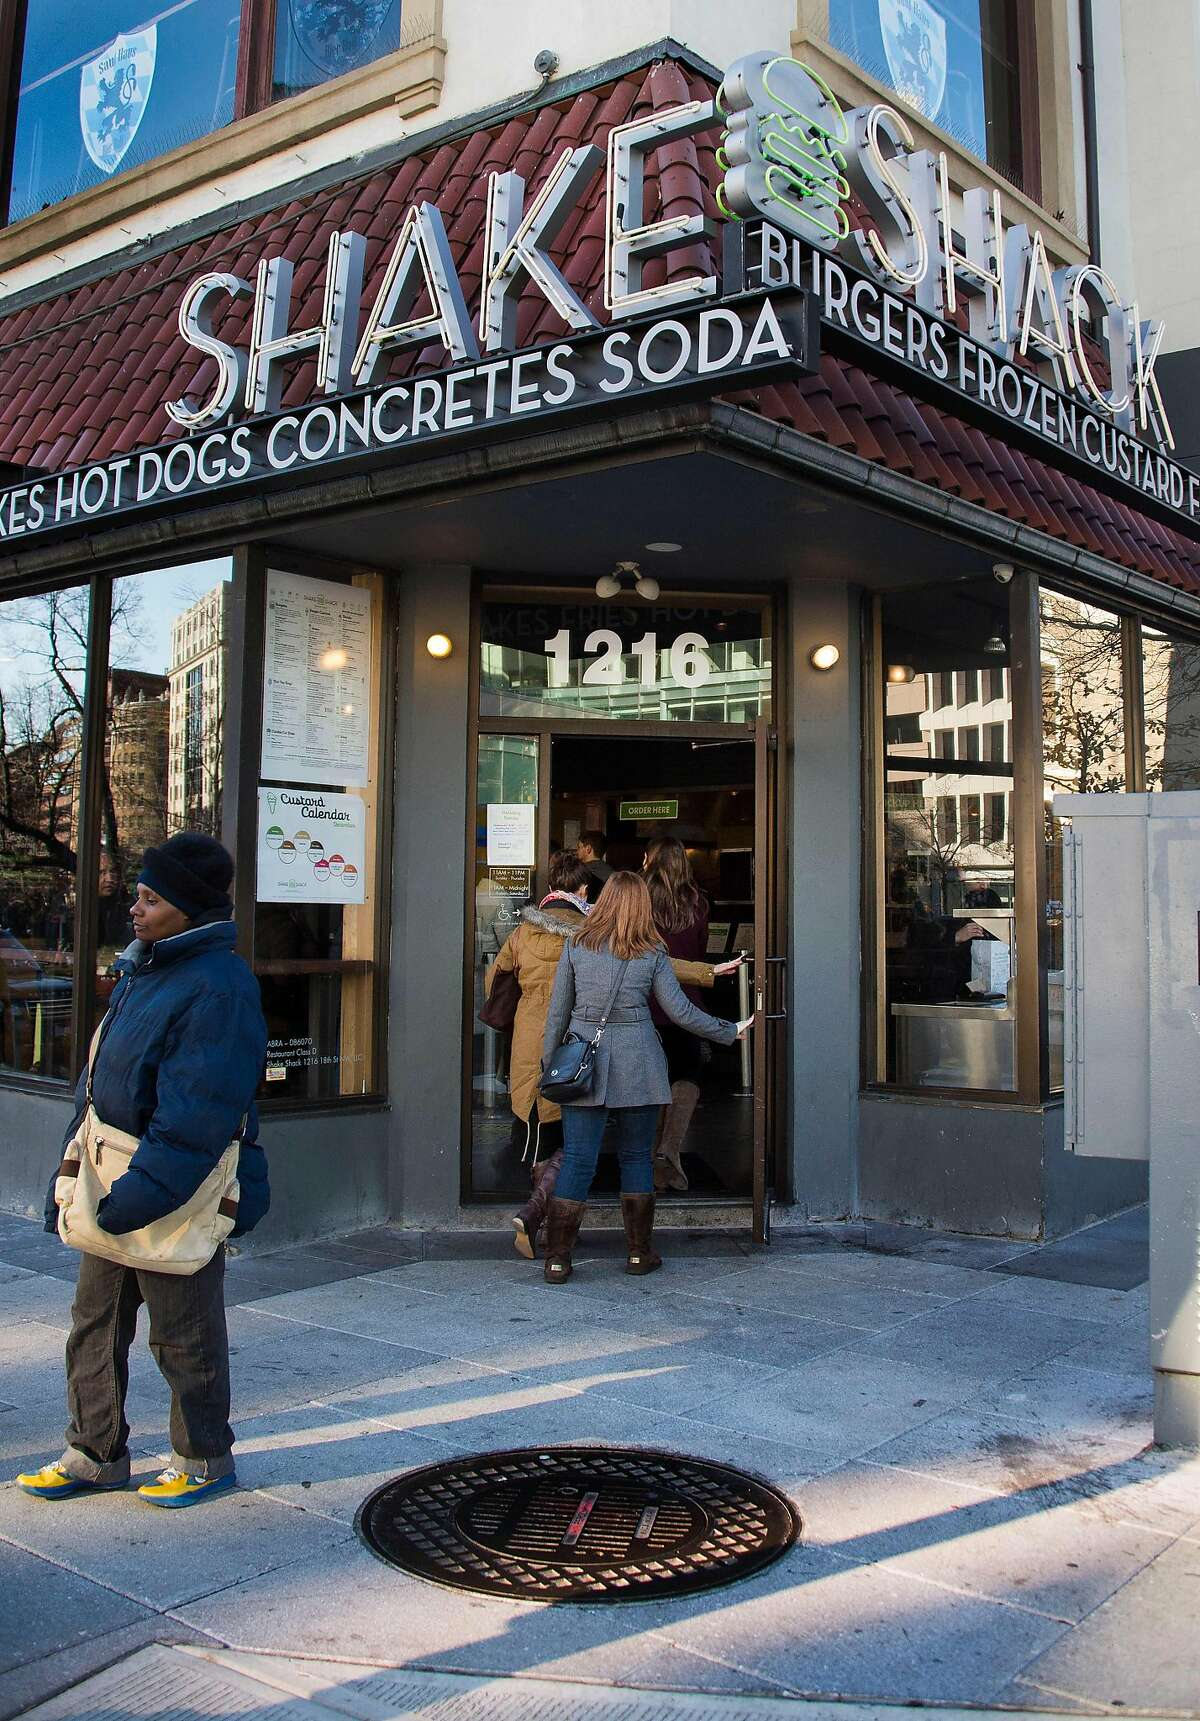 Institutions that have received, and returned, government bailout money Shake Shack Upscale burger chain Shake Shack said it had returned $10 million received from a US small business loan program, raising fresh questions about how the emergency financing is being managed as Congress negotiates over adding funding.